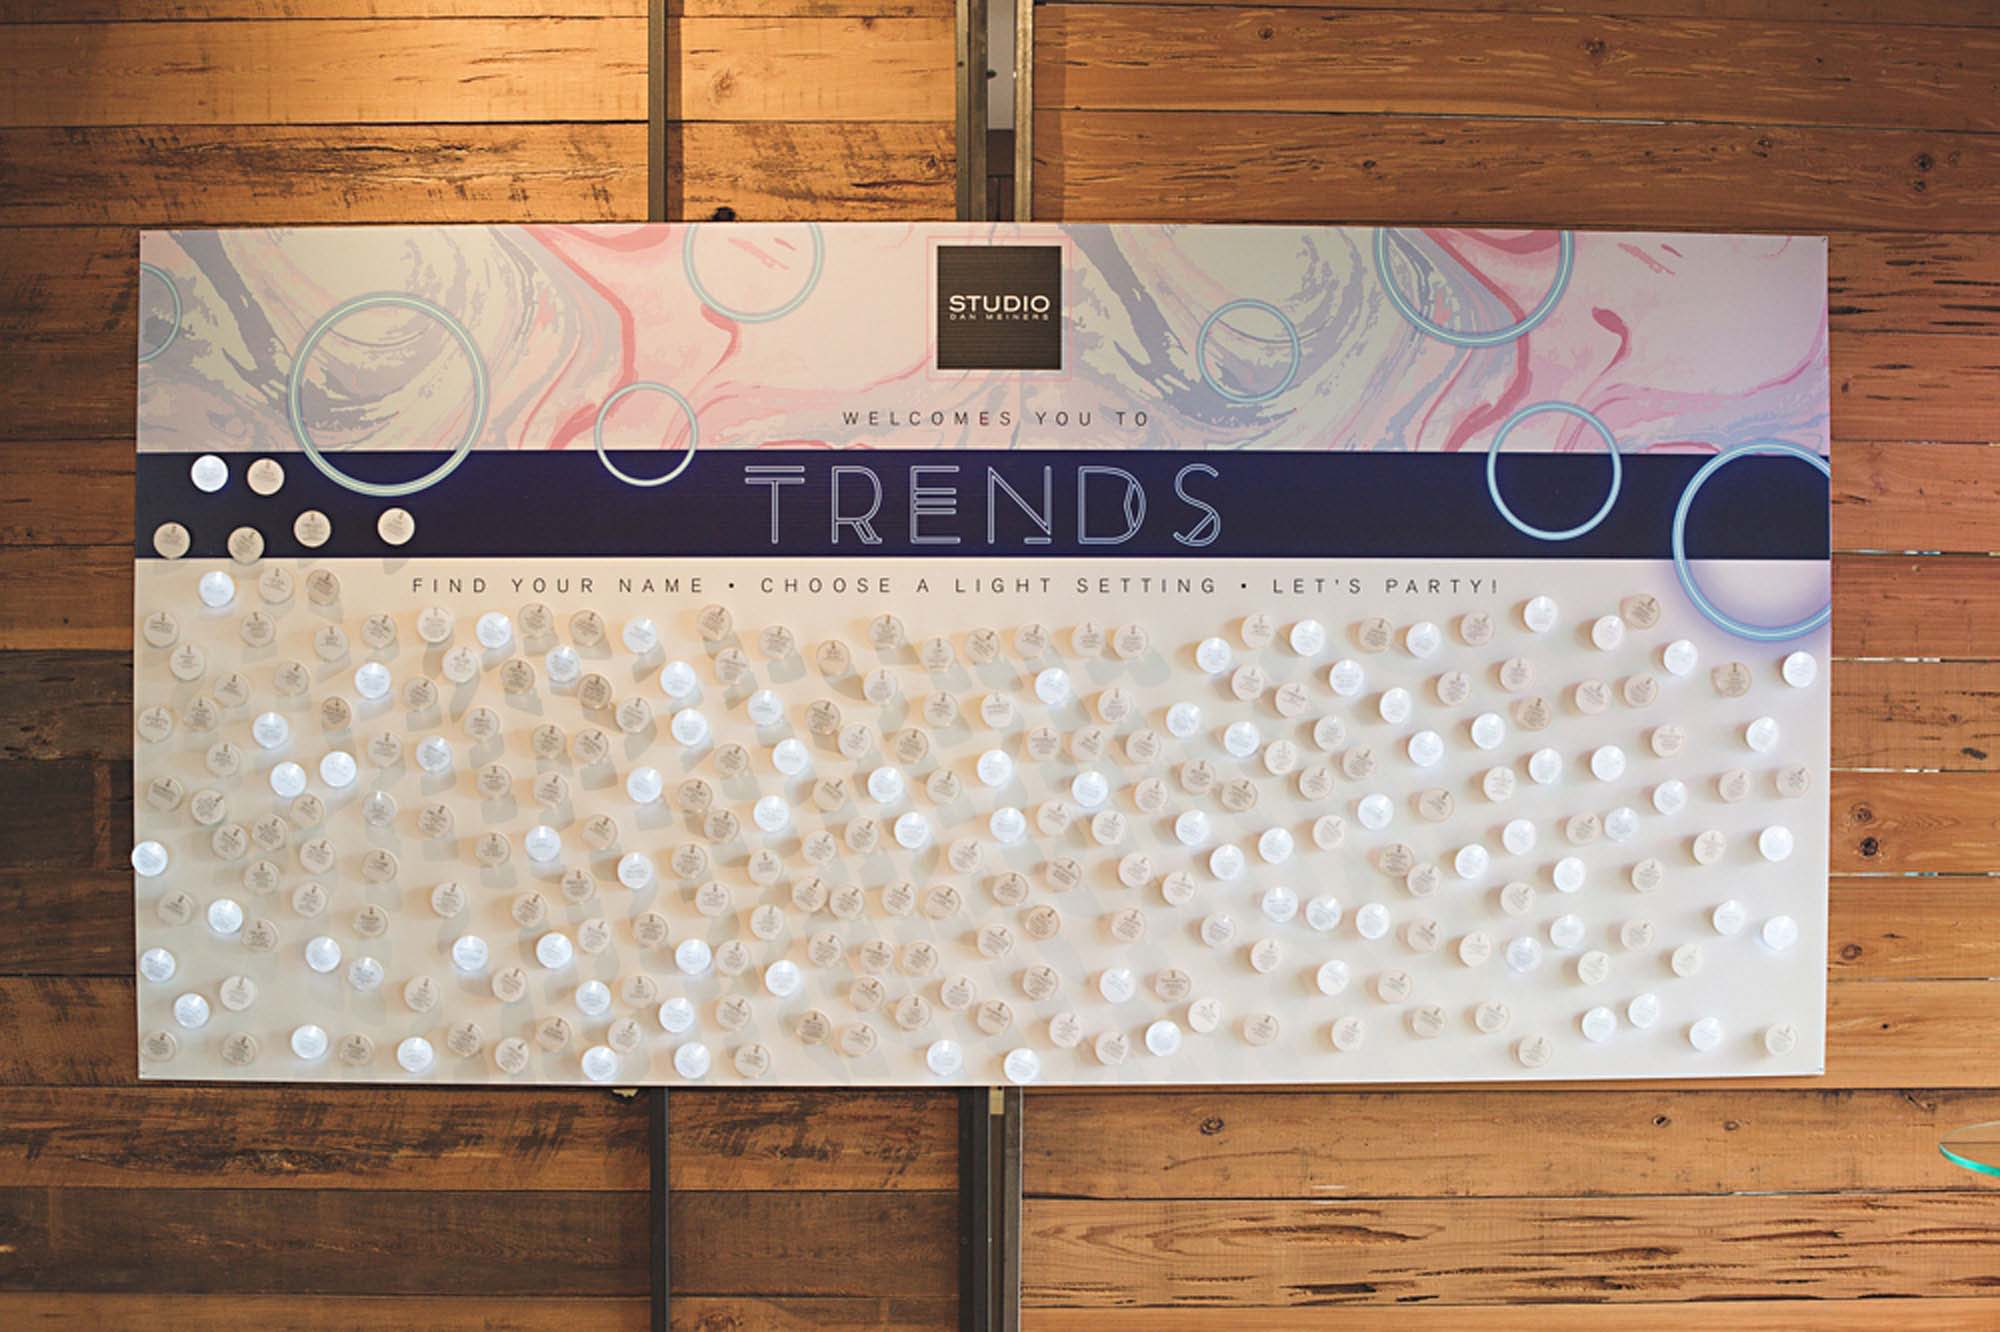 KC Wedding and event trends 2016 at studio dan meiners